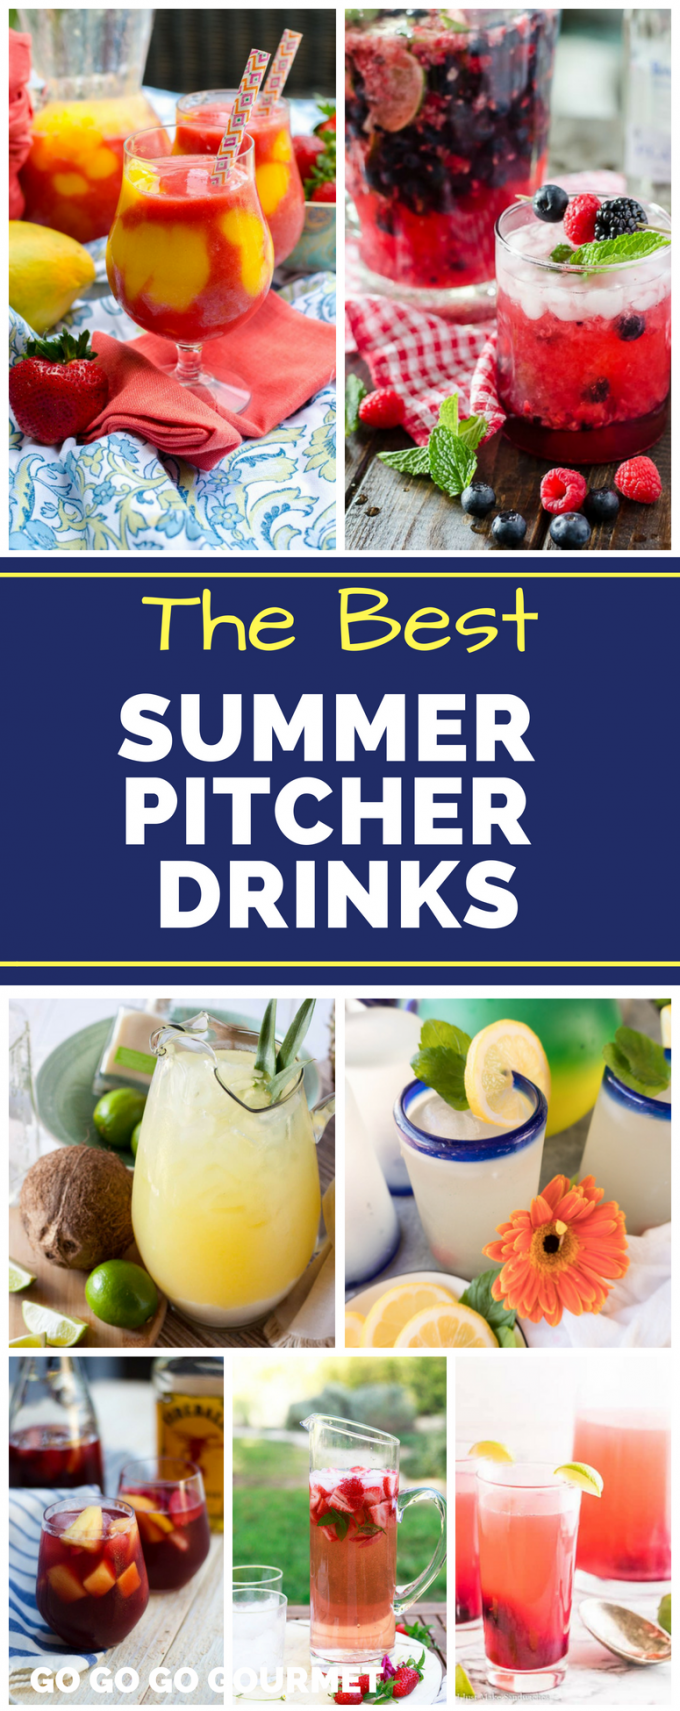 Whether alcoholic or non-alcoholic, these Summer Pitcher Drinks are a great way to serve cocktails for a crowd! Your summer party won't be complete without at least one of these easy recipes! #summerpitcherdrinks #cocktailsforacrowd #easysummercocktails #gogogogourmet via @gogogogourmet